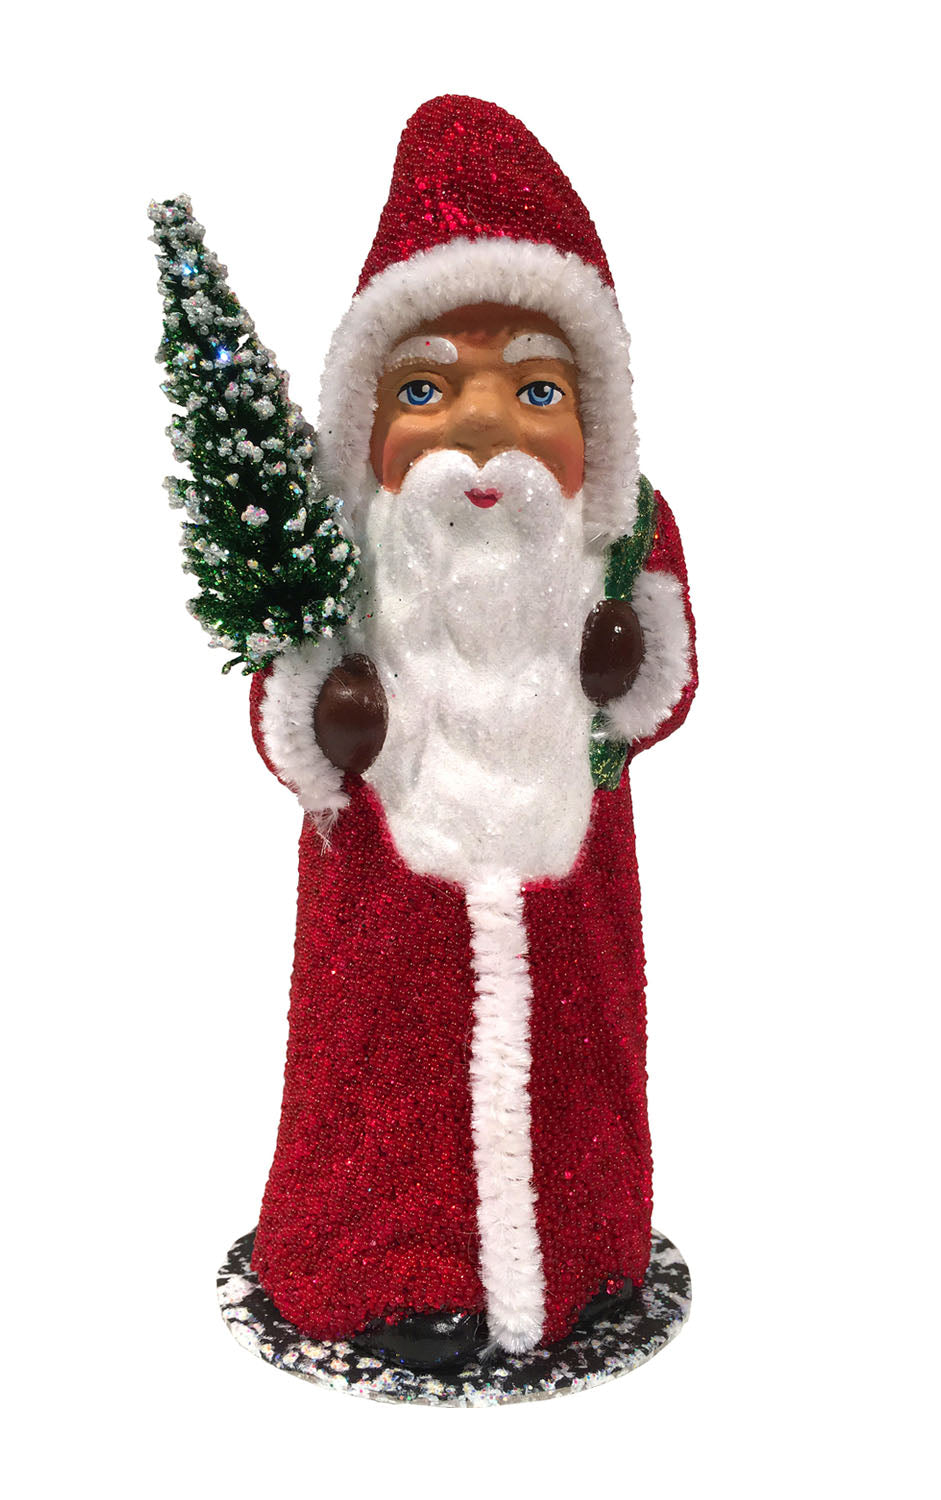 Alexander Taron Decorative Collectibles Schaller Paper Mache Candy Container - Santa Red Beaded Coat